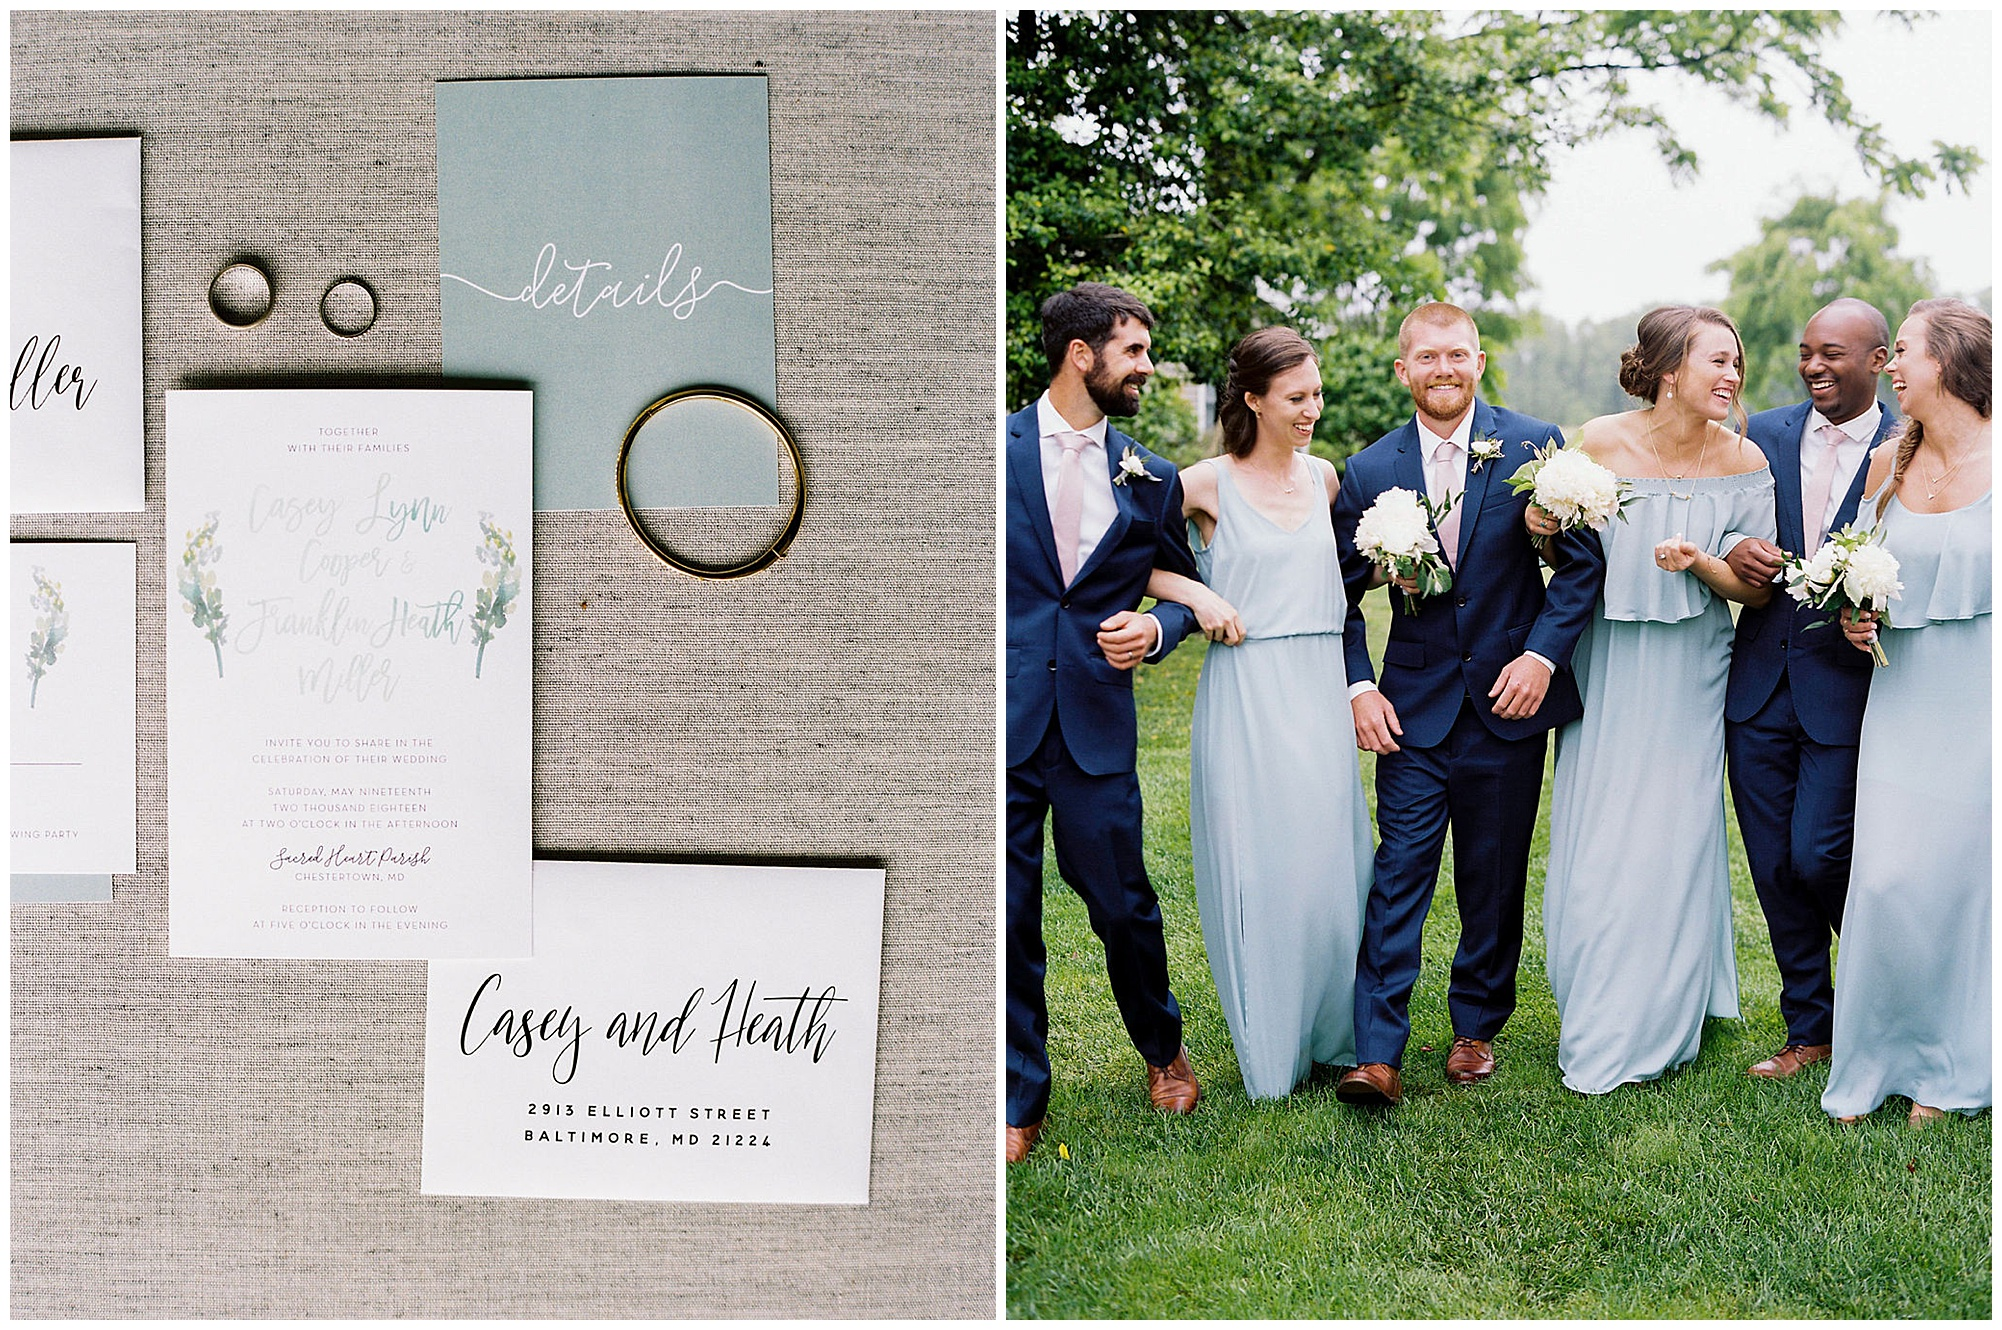 elegant blue and white floral wedding invites with watercolor design and photo of happy bridesmaids and groomsmen outdoors with navy suits, pink ties, elegant florals, and blue dreses